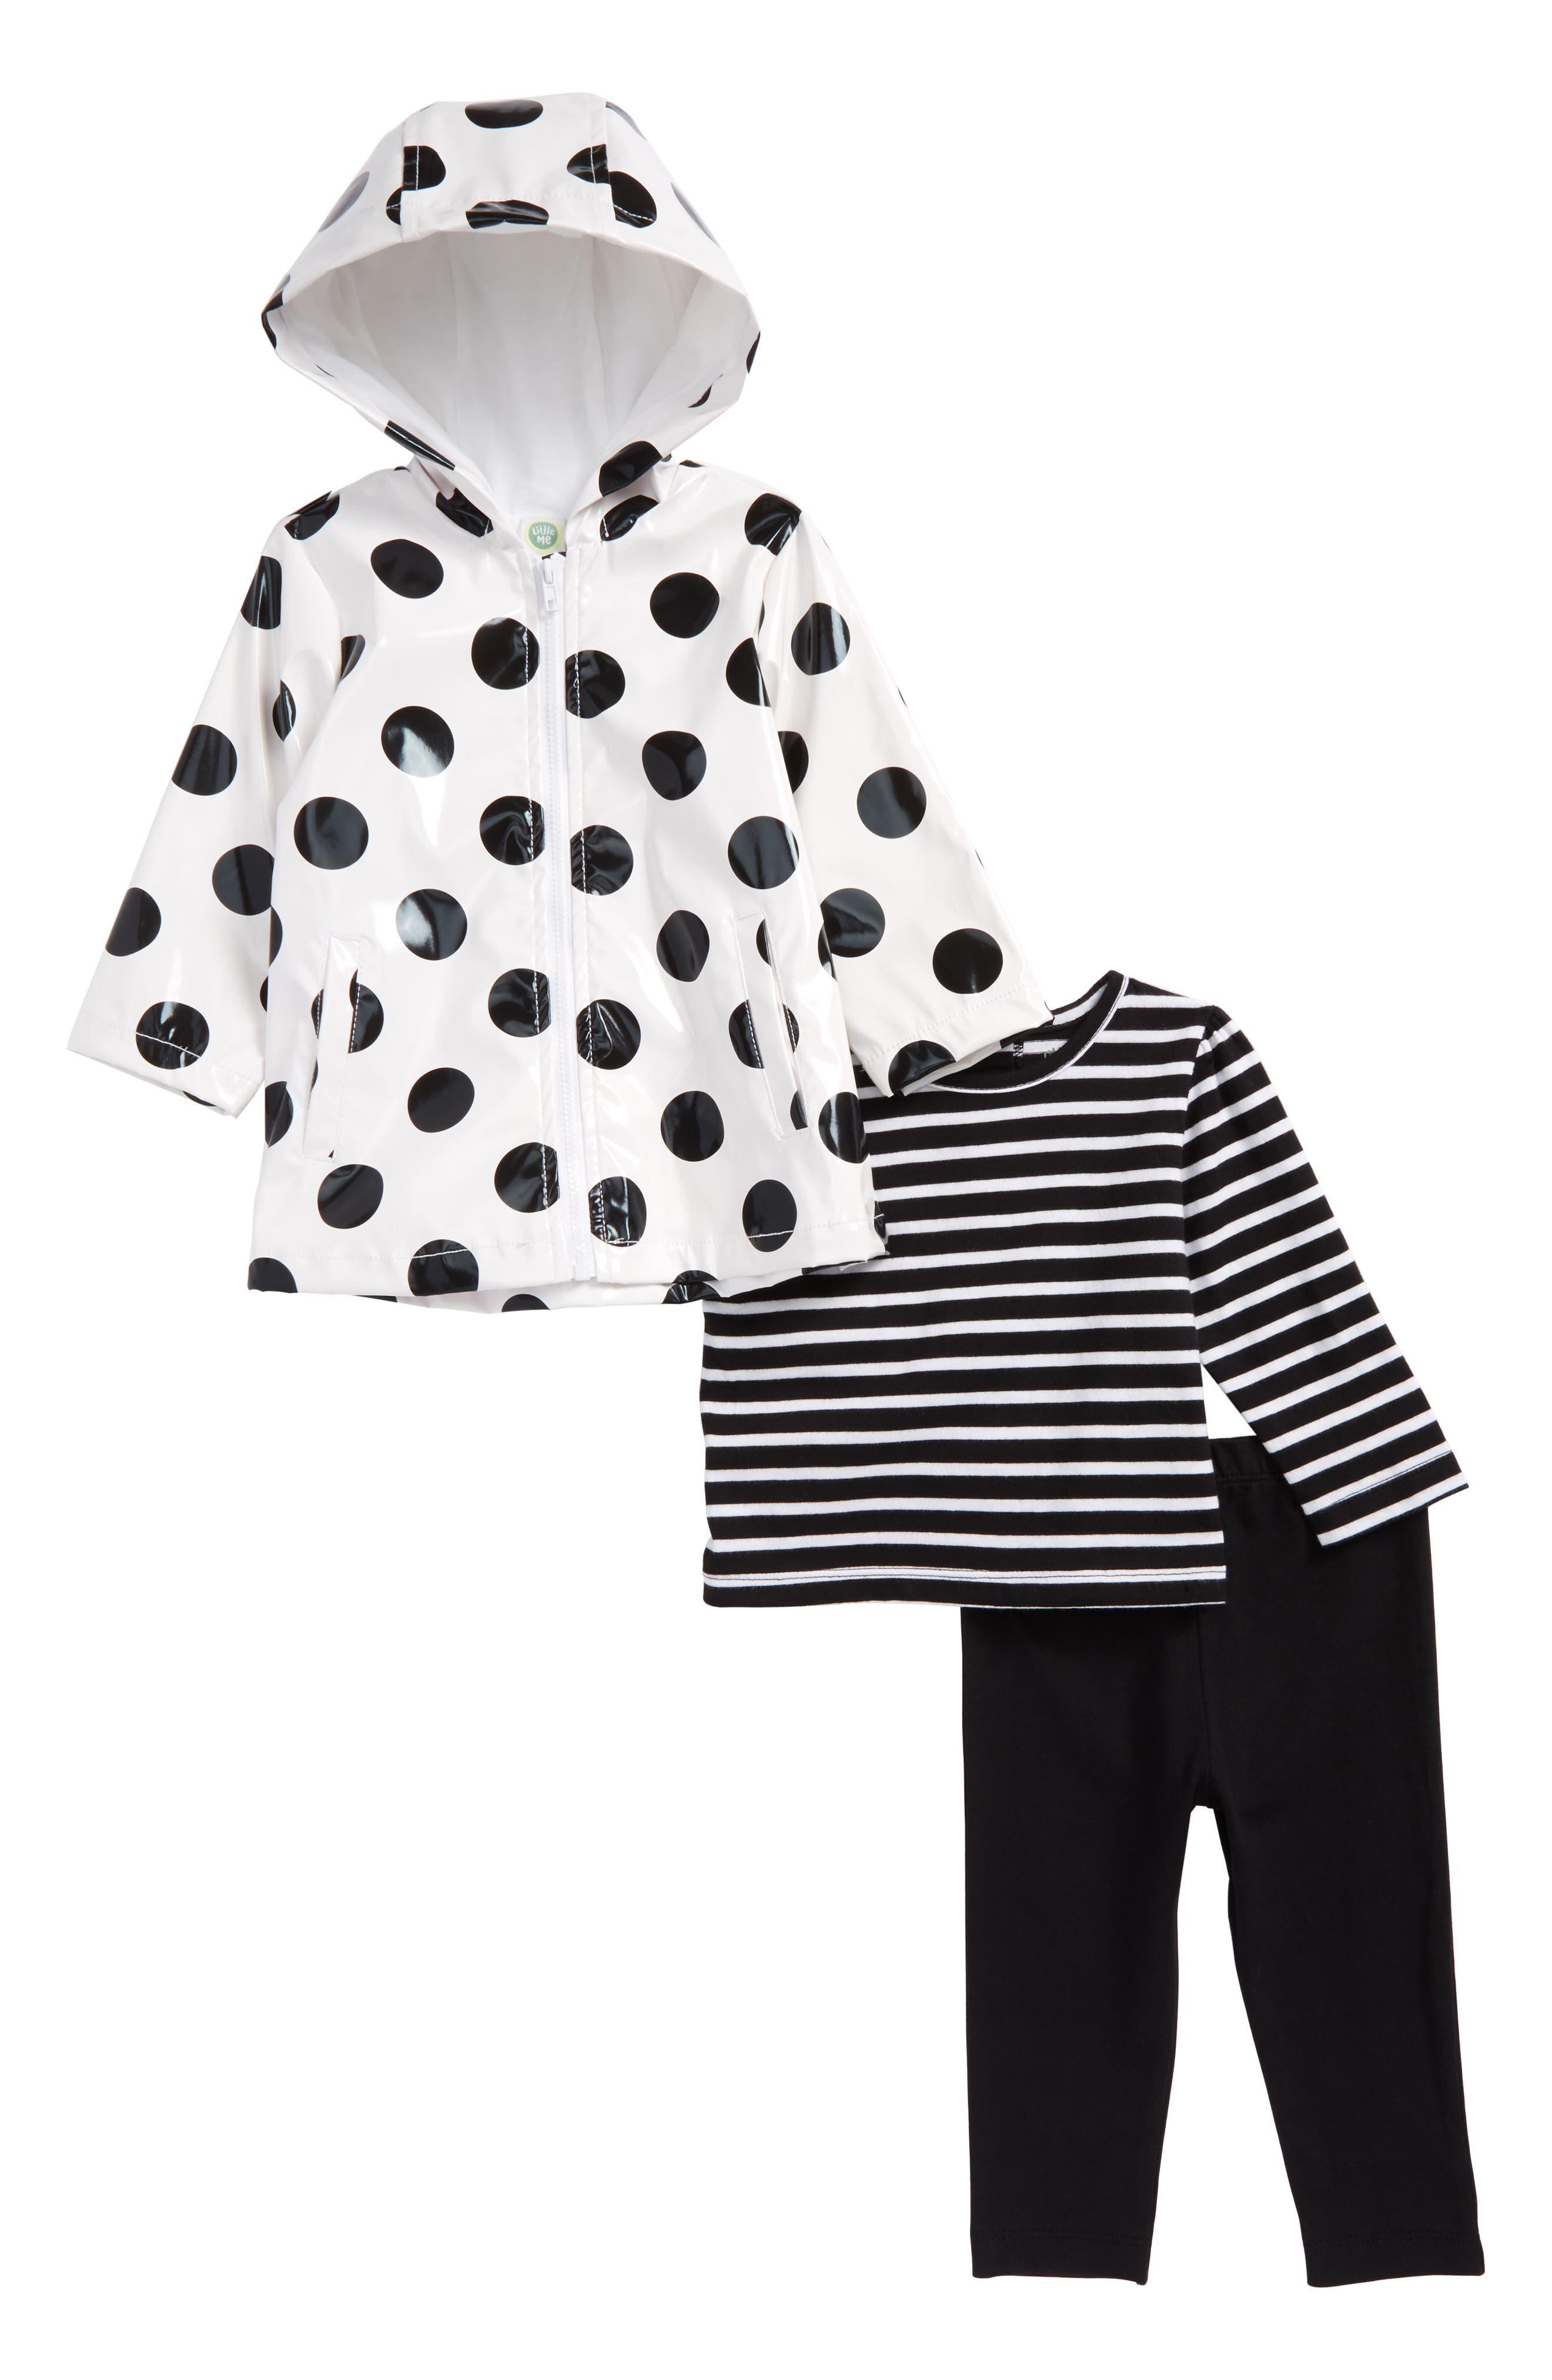 Main Image - Little Me Daisy Stripe Tee, Leggings & Polka Dot Hooded Raincoat Set (Baby Girls)